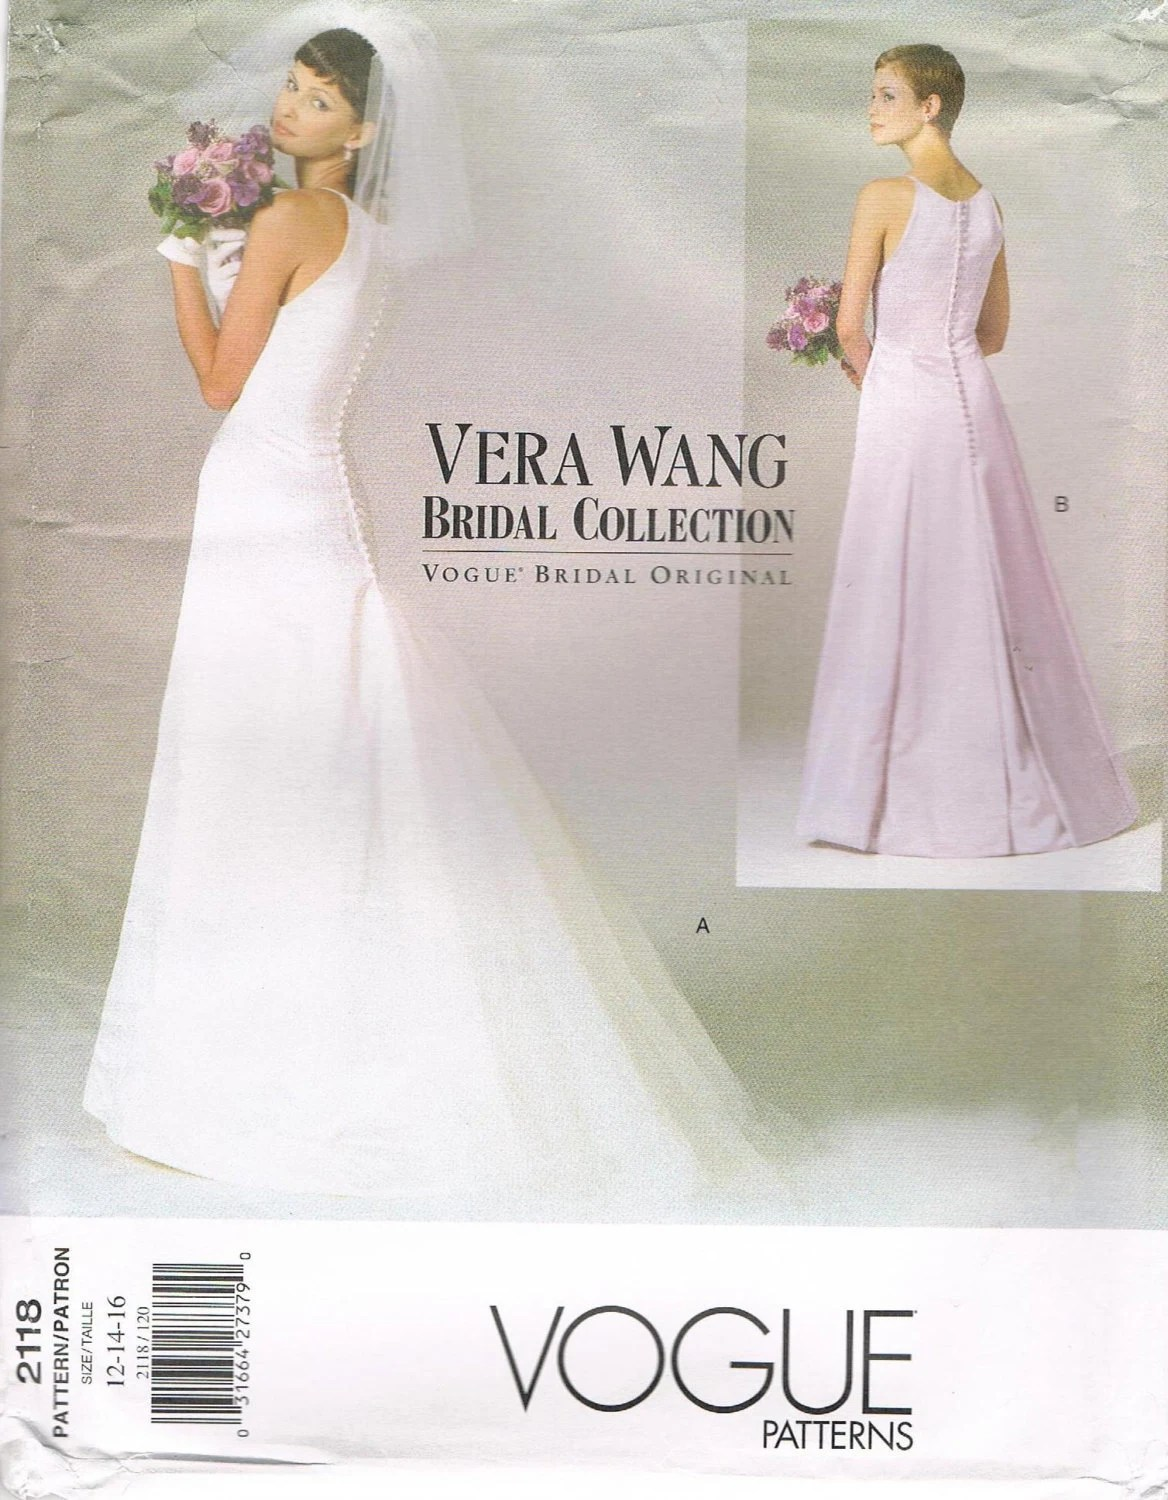 Vera Wang bridal gown pattern - Vogue 2118